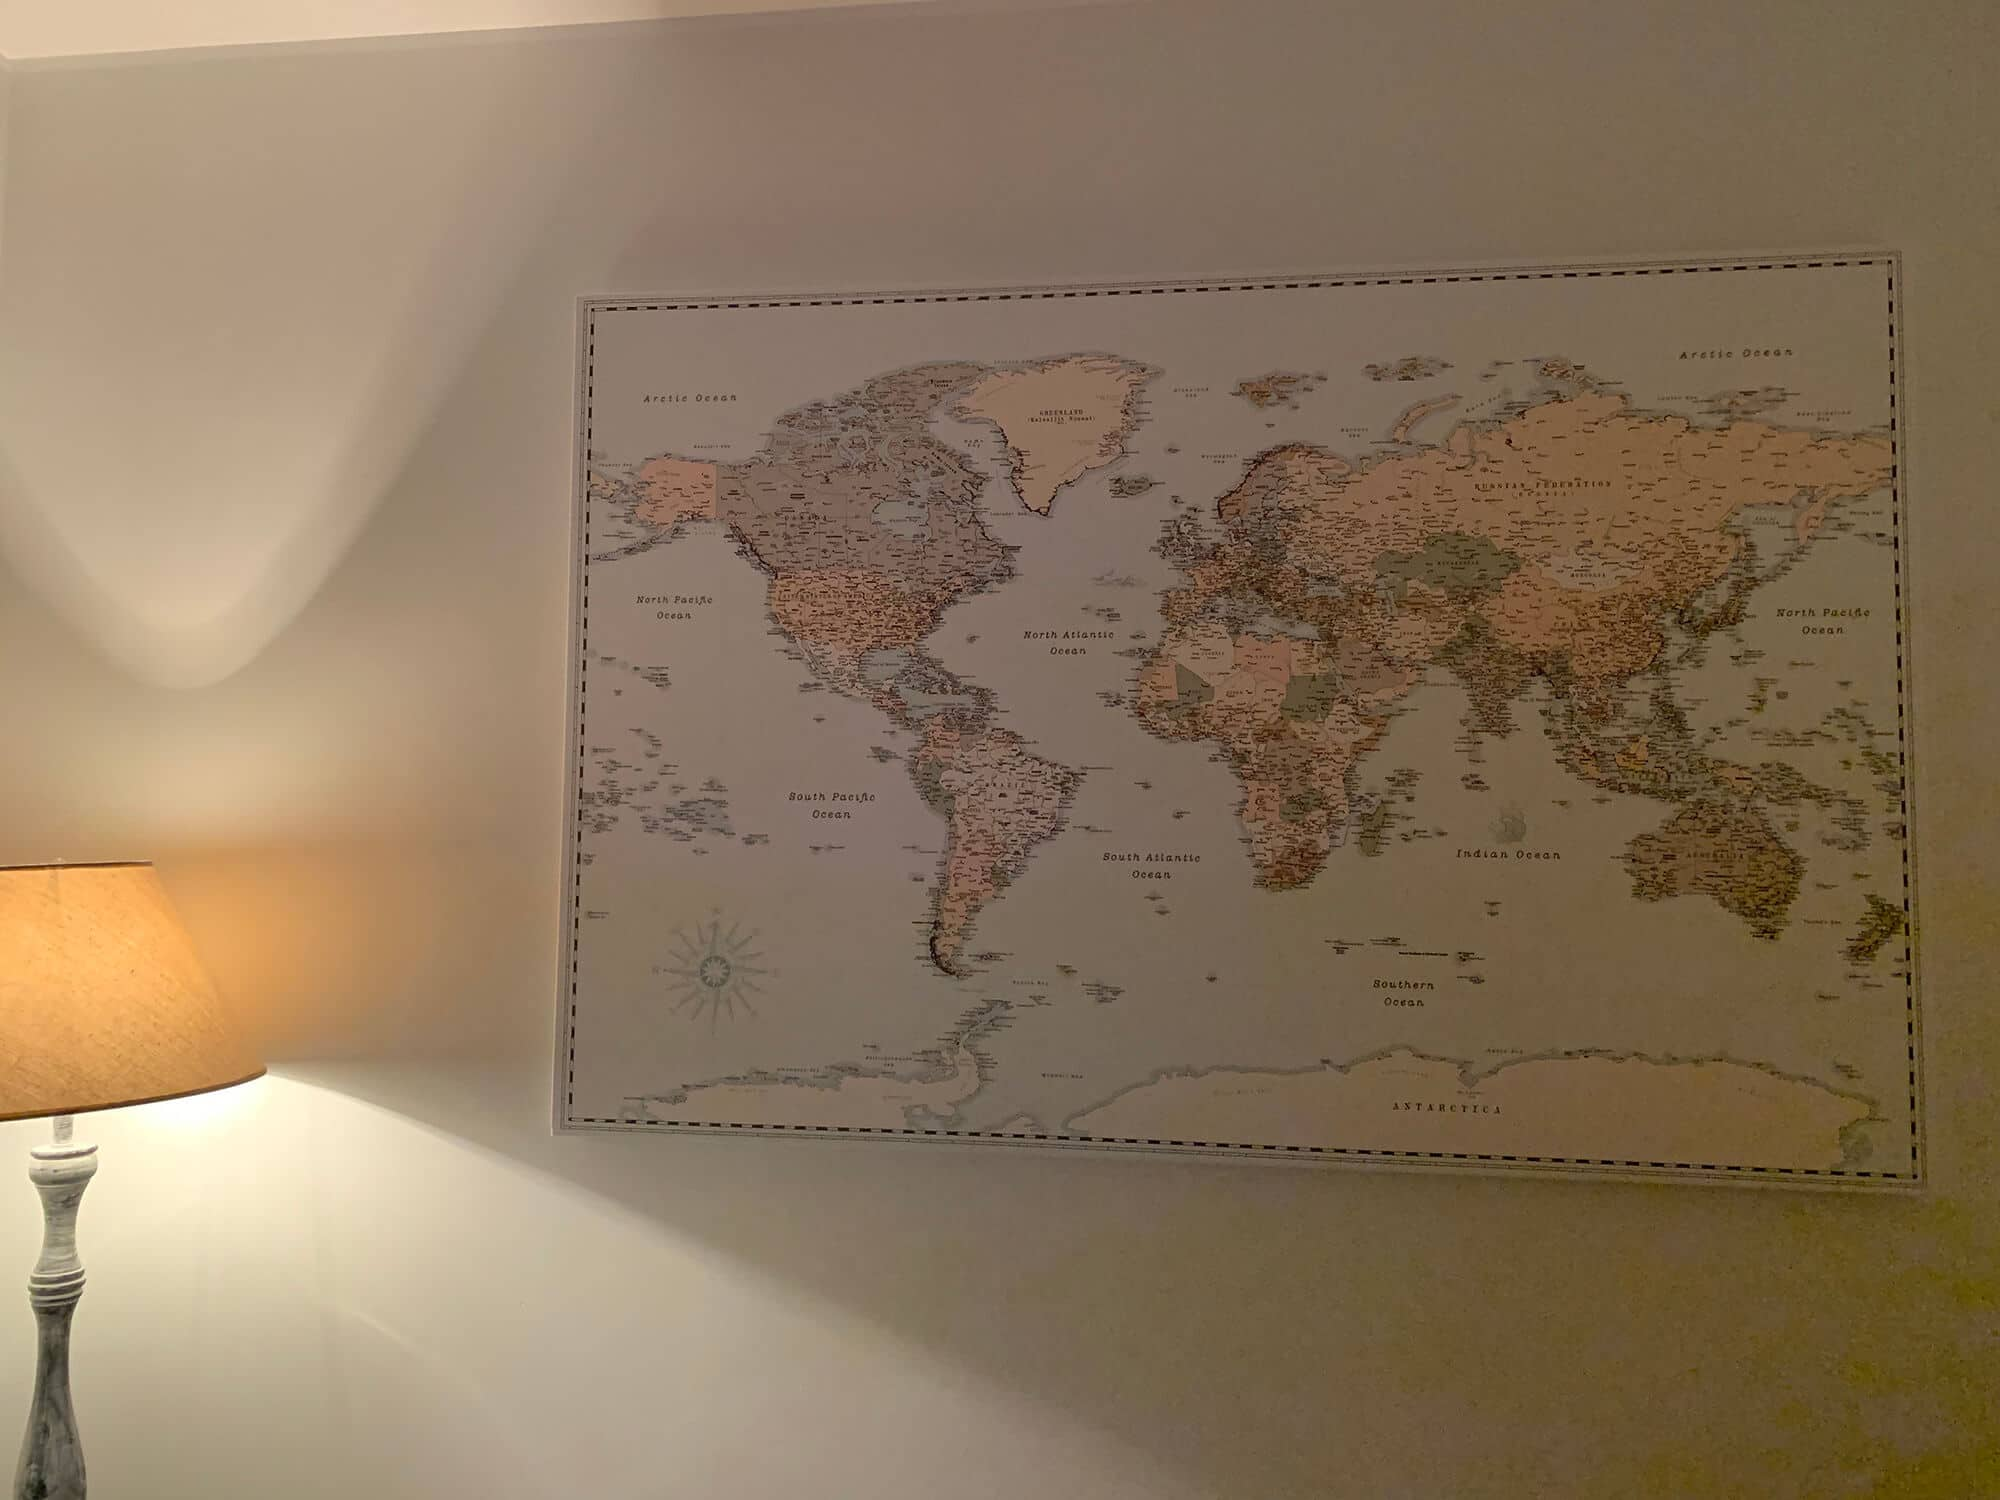 push pin retro style world map livingroom decor